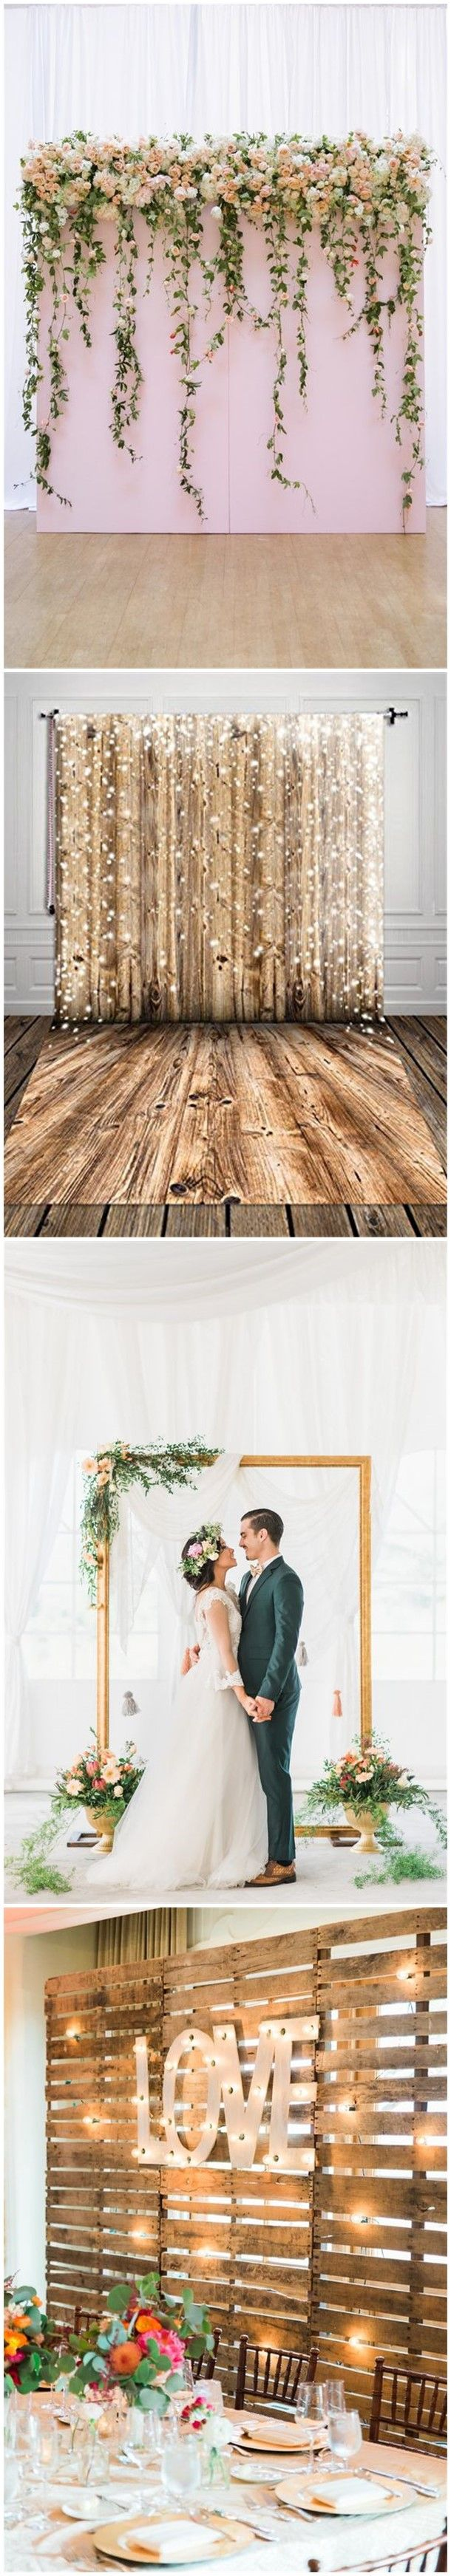 Wedding decorations backdrop   Unique and Breathtaking Wedding Backdrop Ideas  Backdrops th